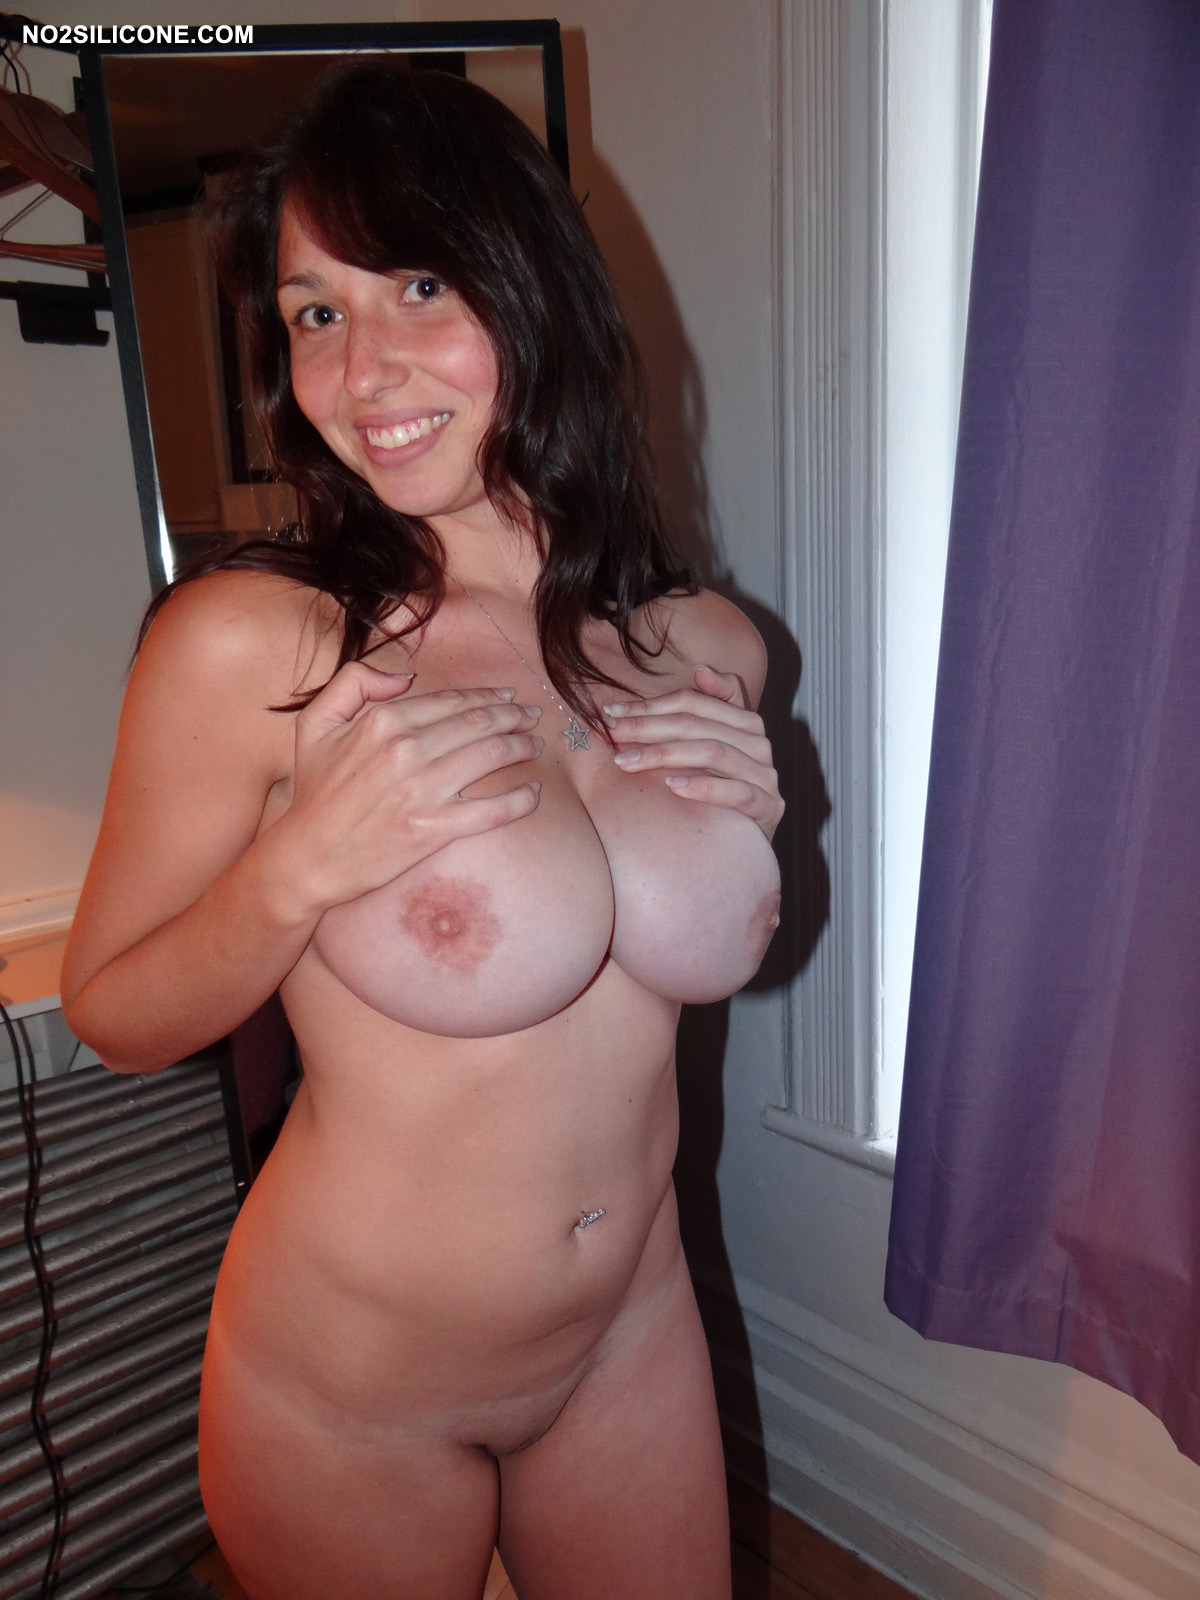 Naked girl mirror big boob advise